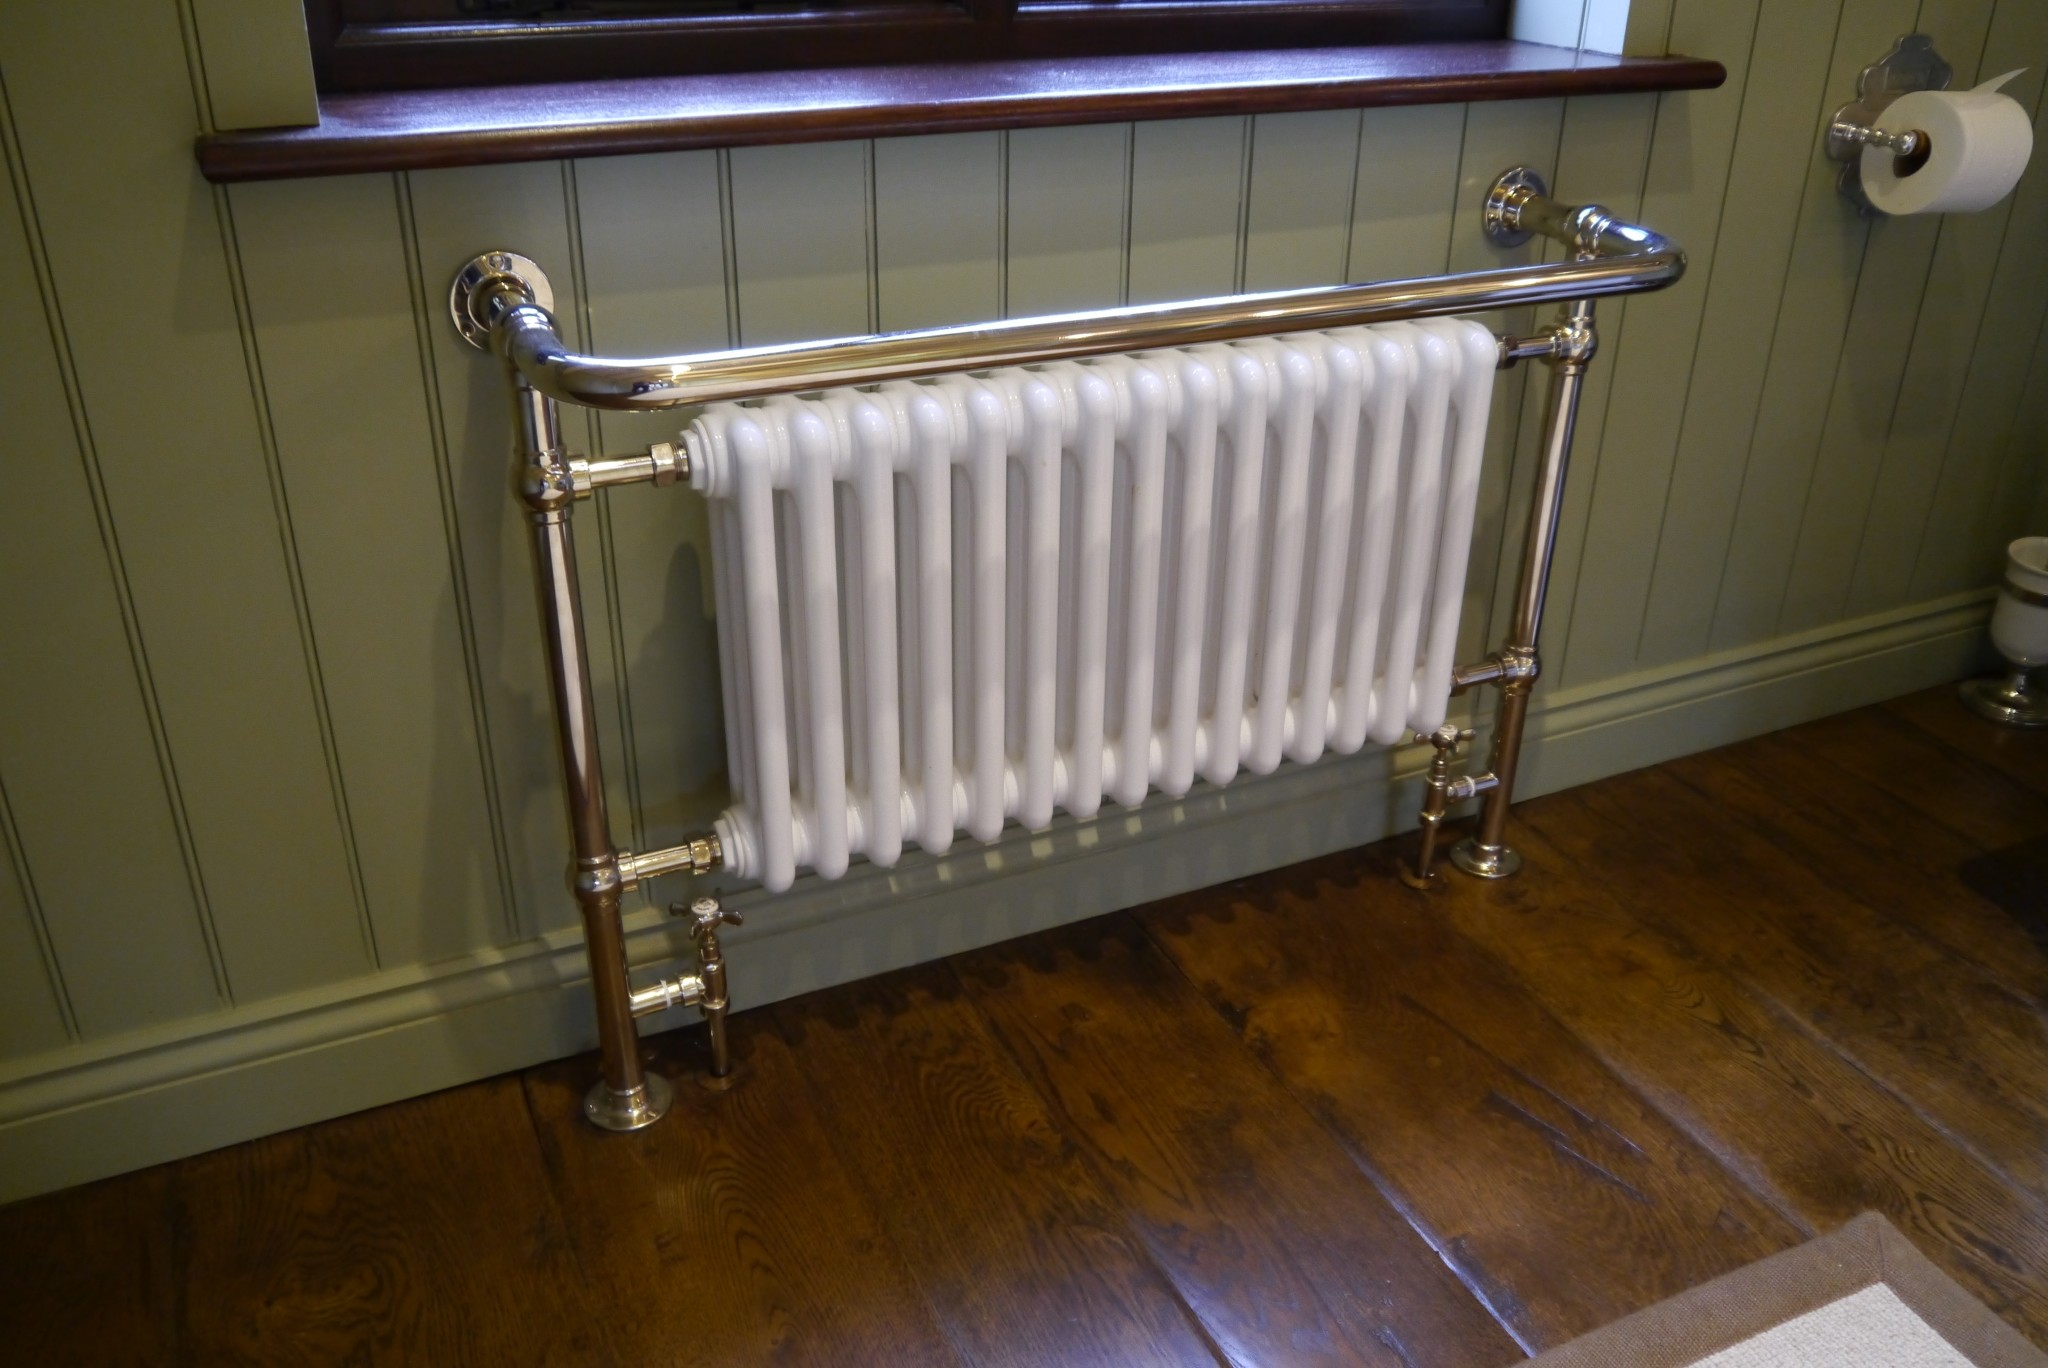 Chadder Bespoke Nickel Heated Towell rail with Radiator